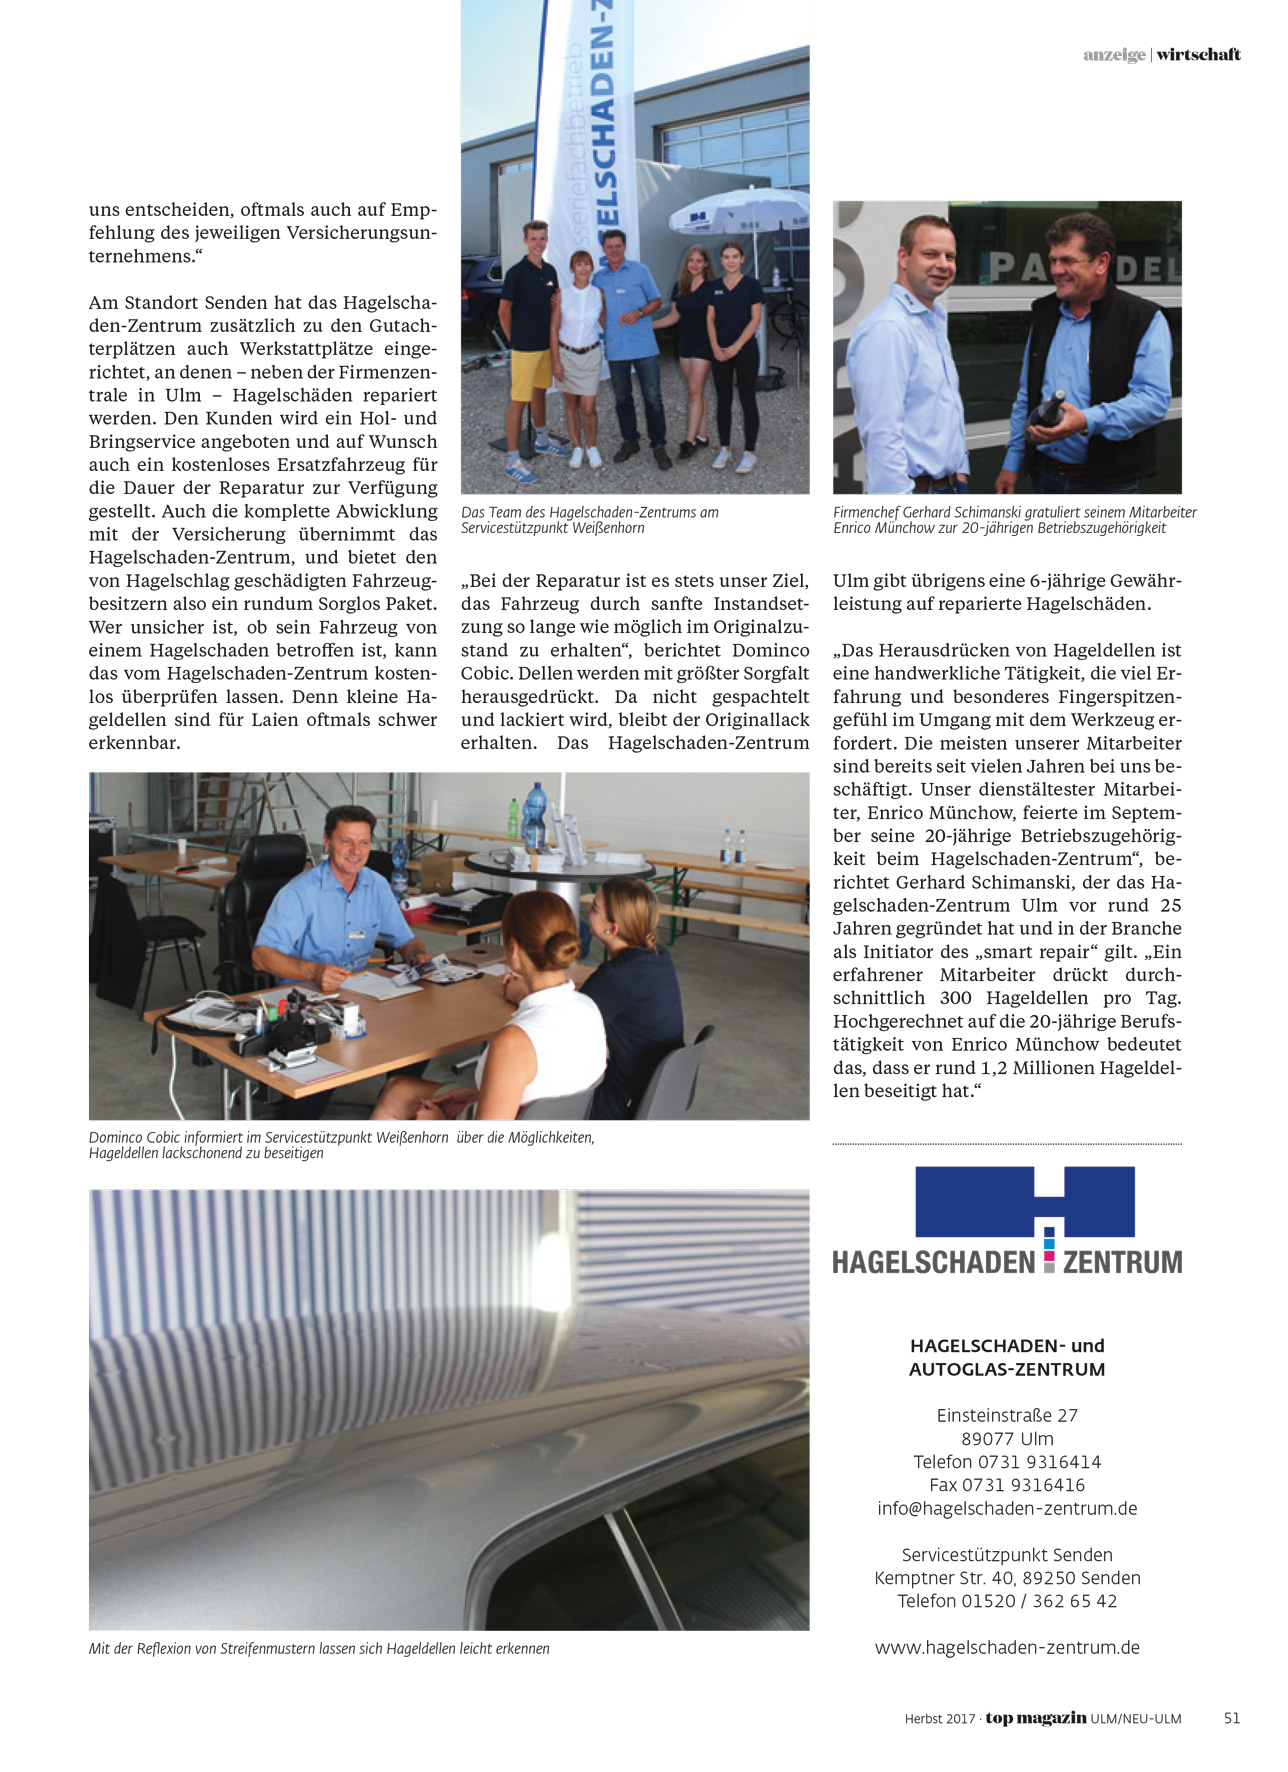 hsz-top-magazin-03-2017-2